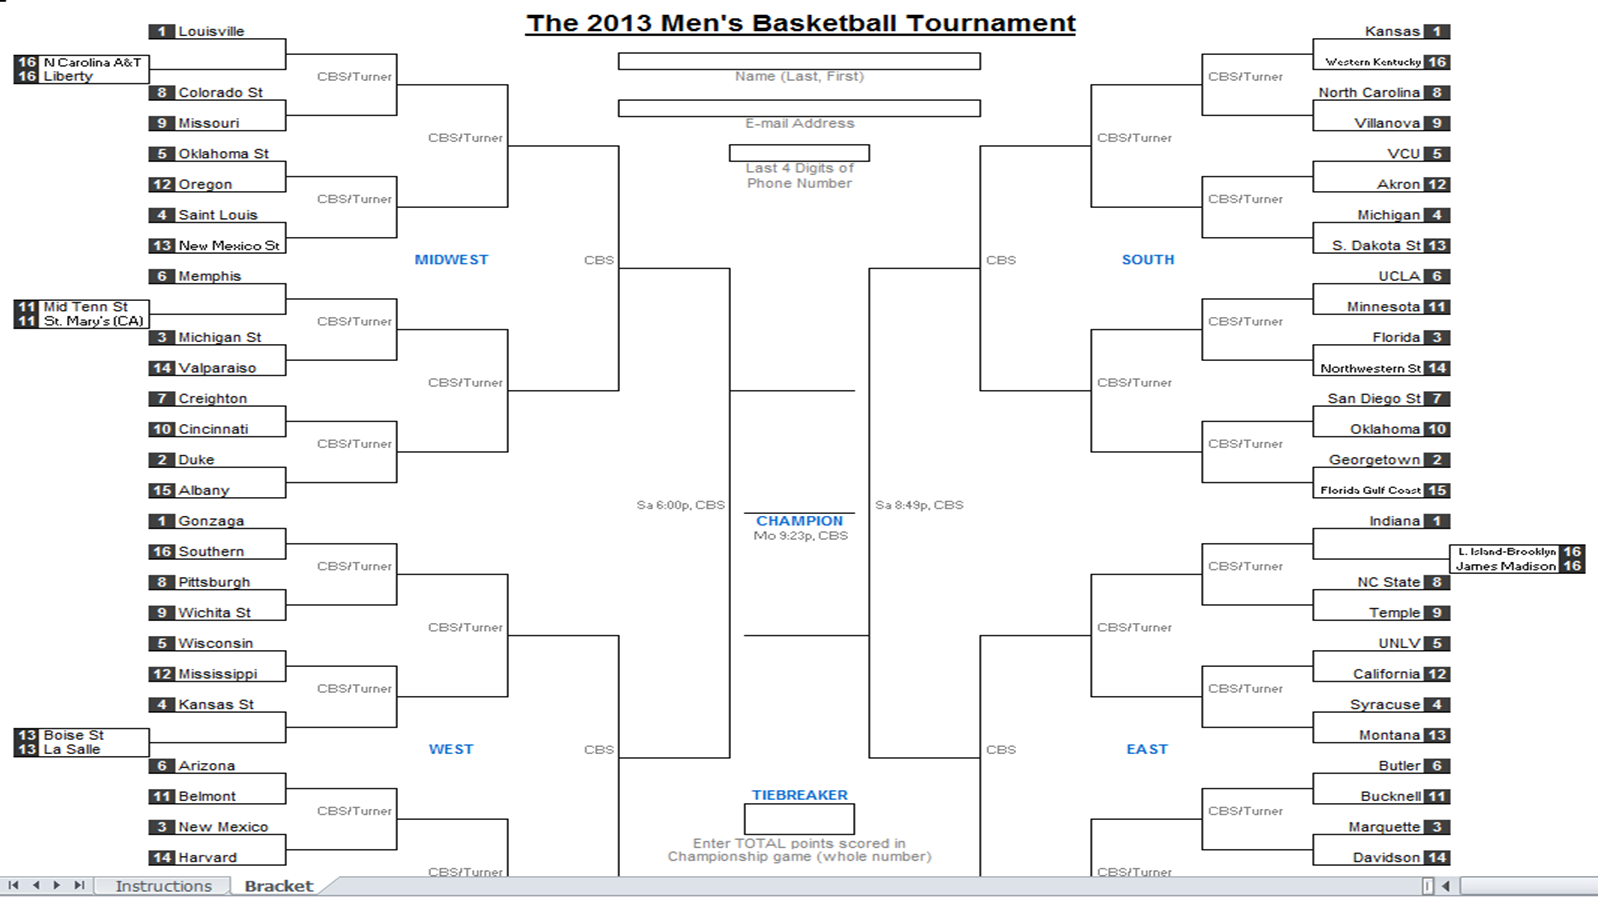 Excel Spreadsheets Help: Downloadable 2013 NCAA Tournament Bracket